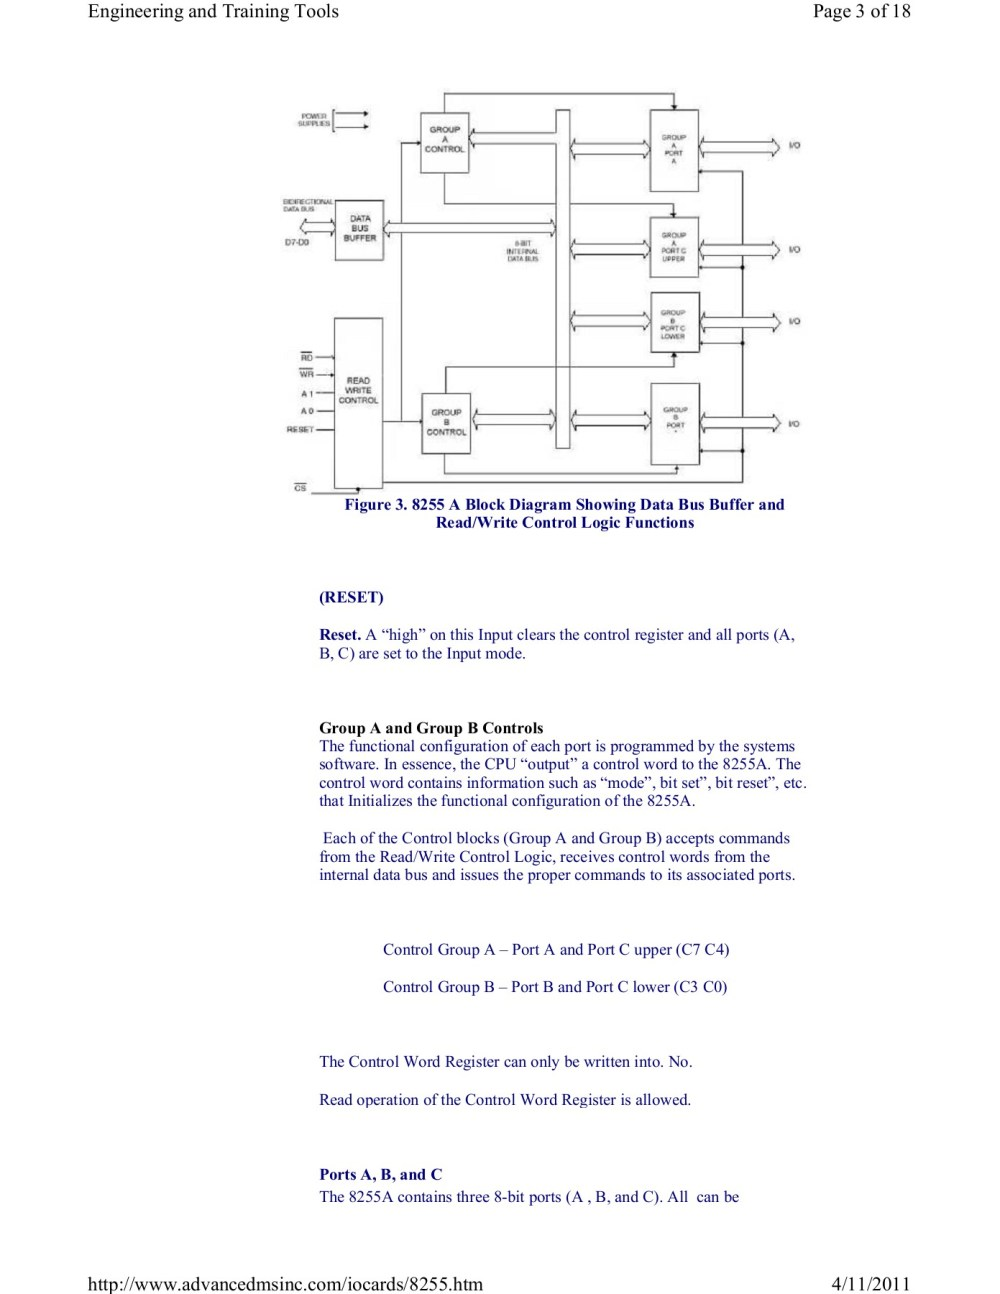 medium resolution of 8255 a block diagram showing data bus buffer and read write control logic functions reset reset a high on this input clears the control register